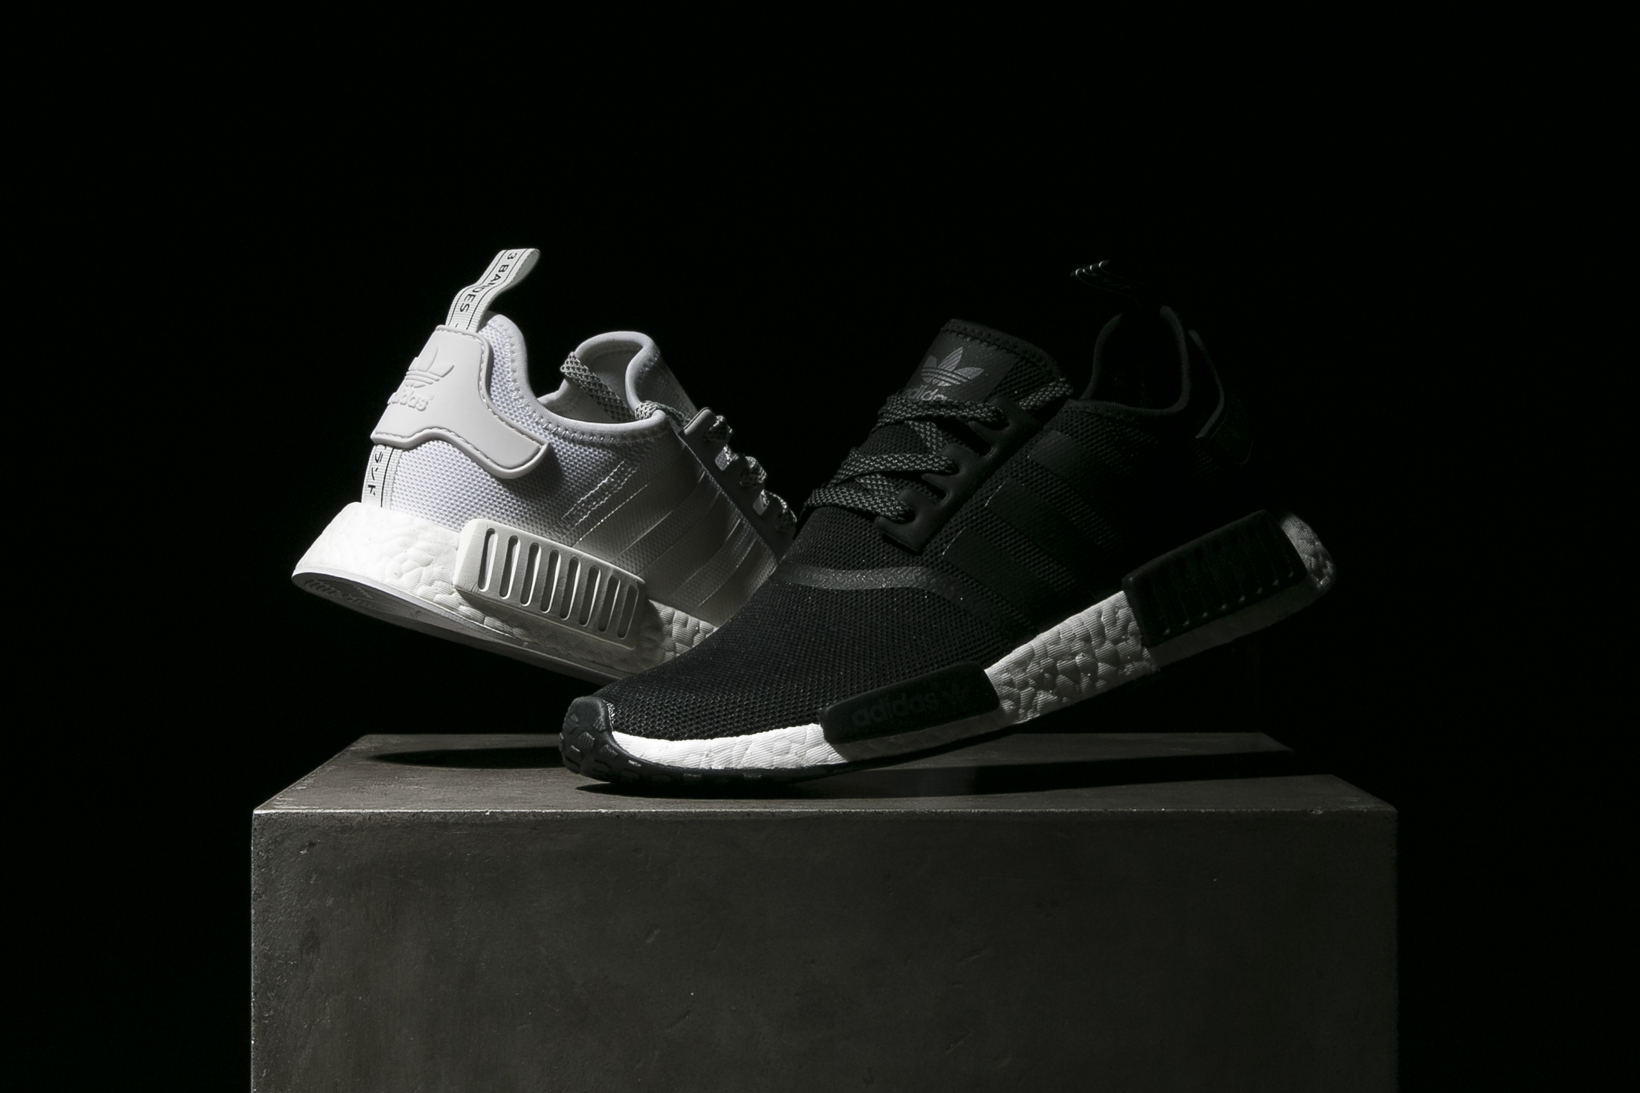 cgynam adidas Originals NMD R1 Reflective Black and White | HYPEBEAST